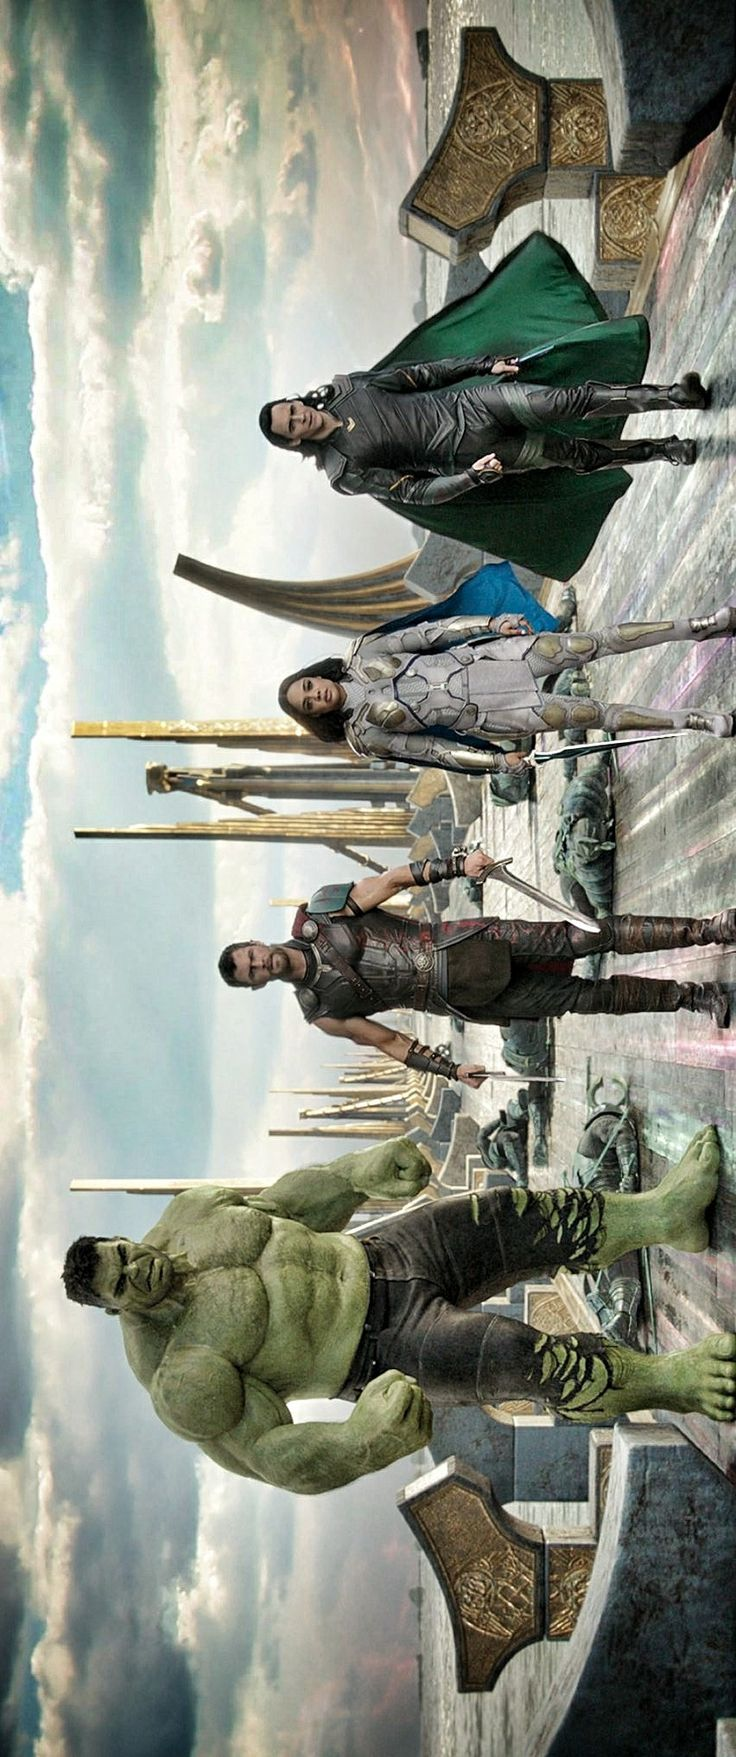 Team Thor<<you mean Team Loki<<< Loki is the only one walking